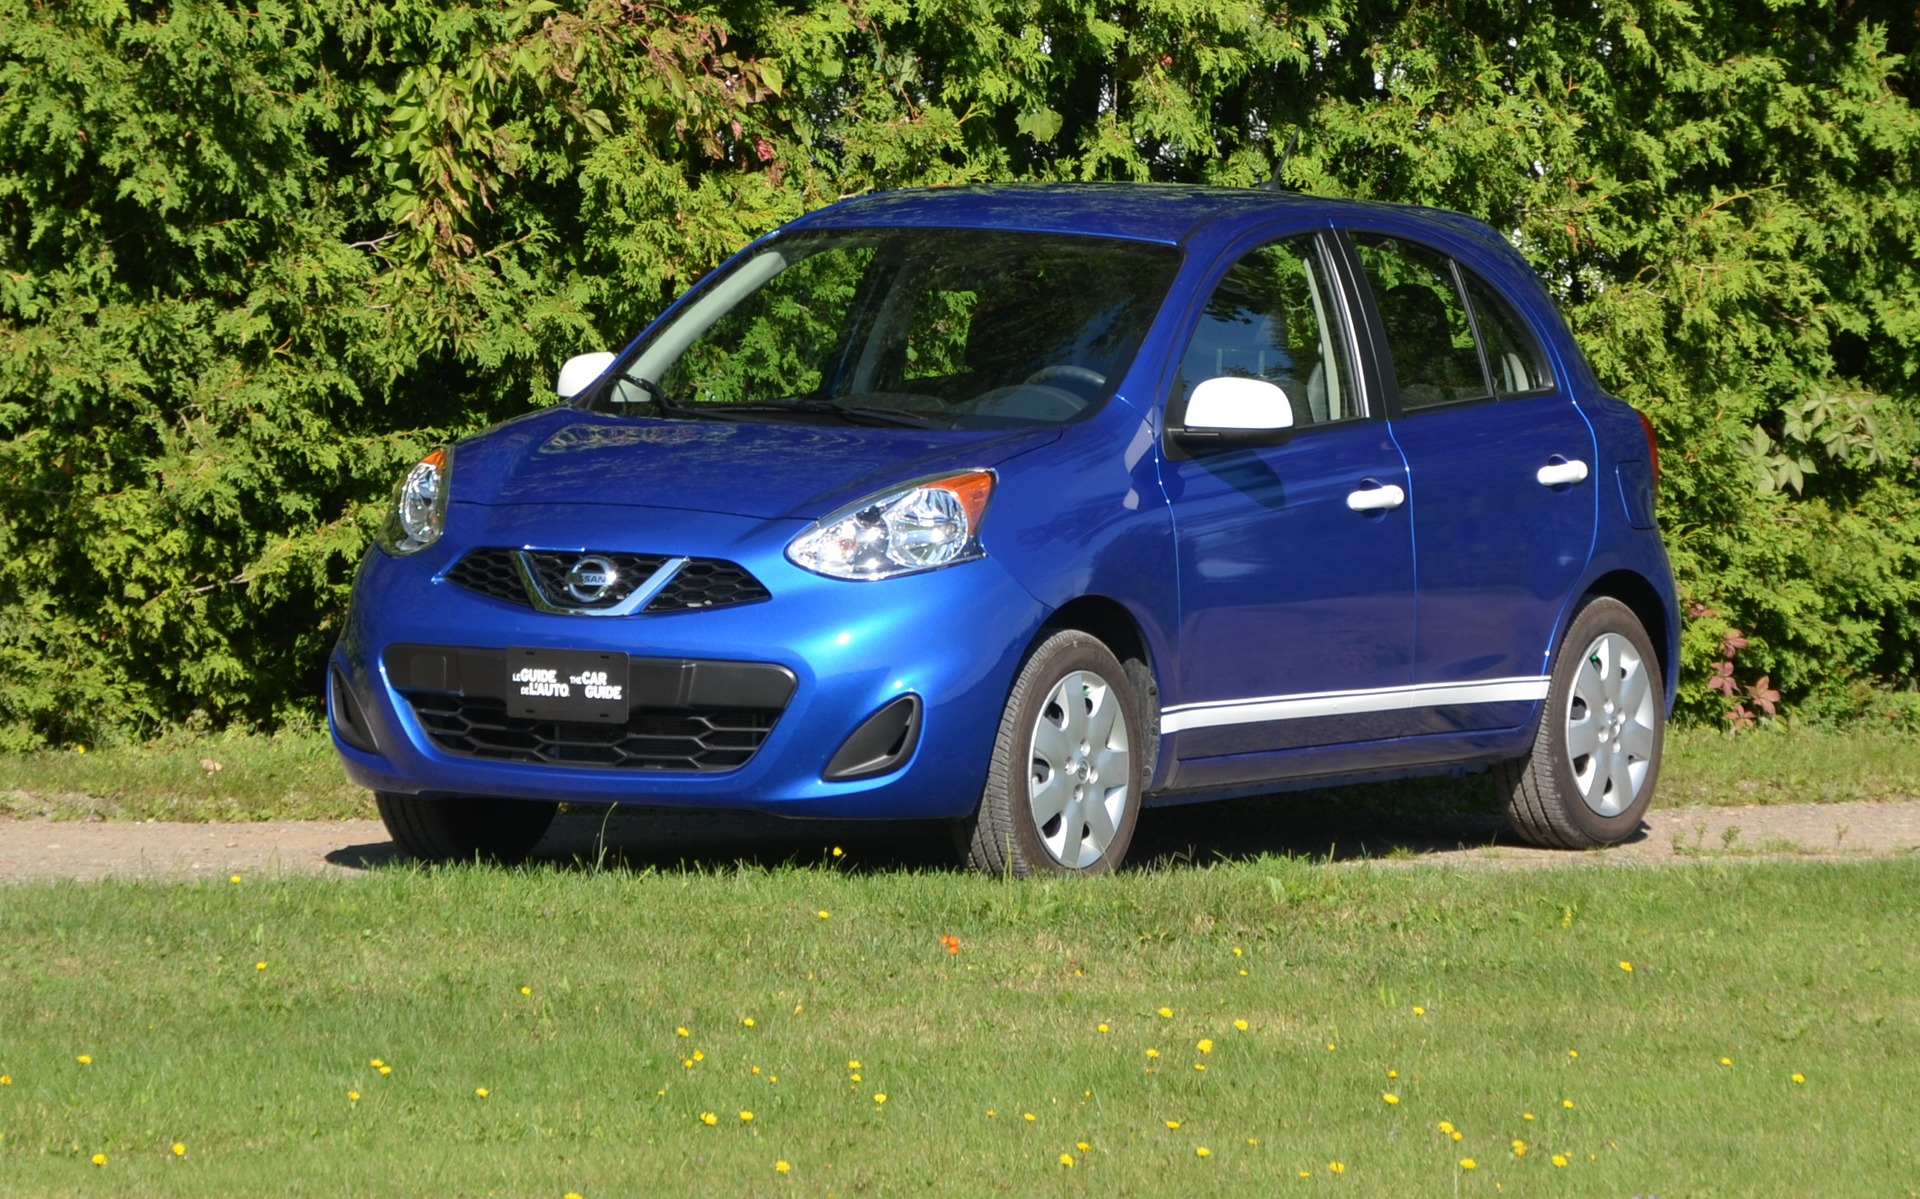 Advertised at $9,998, the Nissan Micra caused quite a stir at its launch.